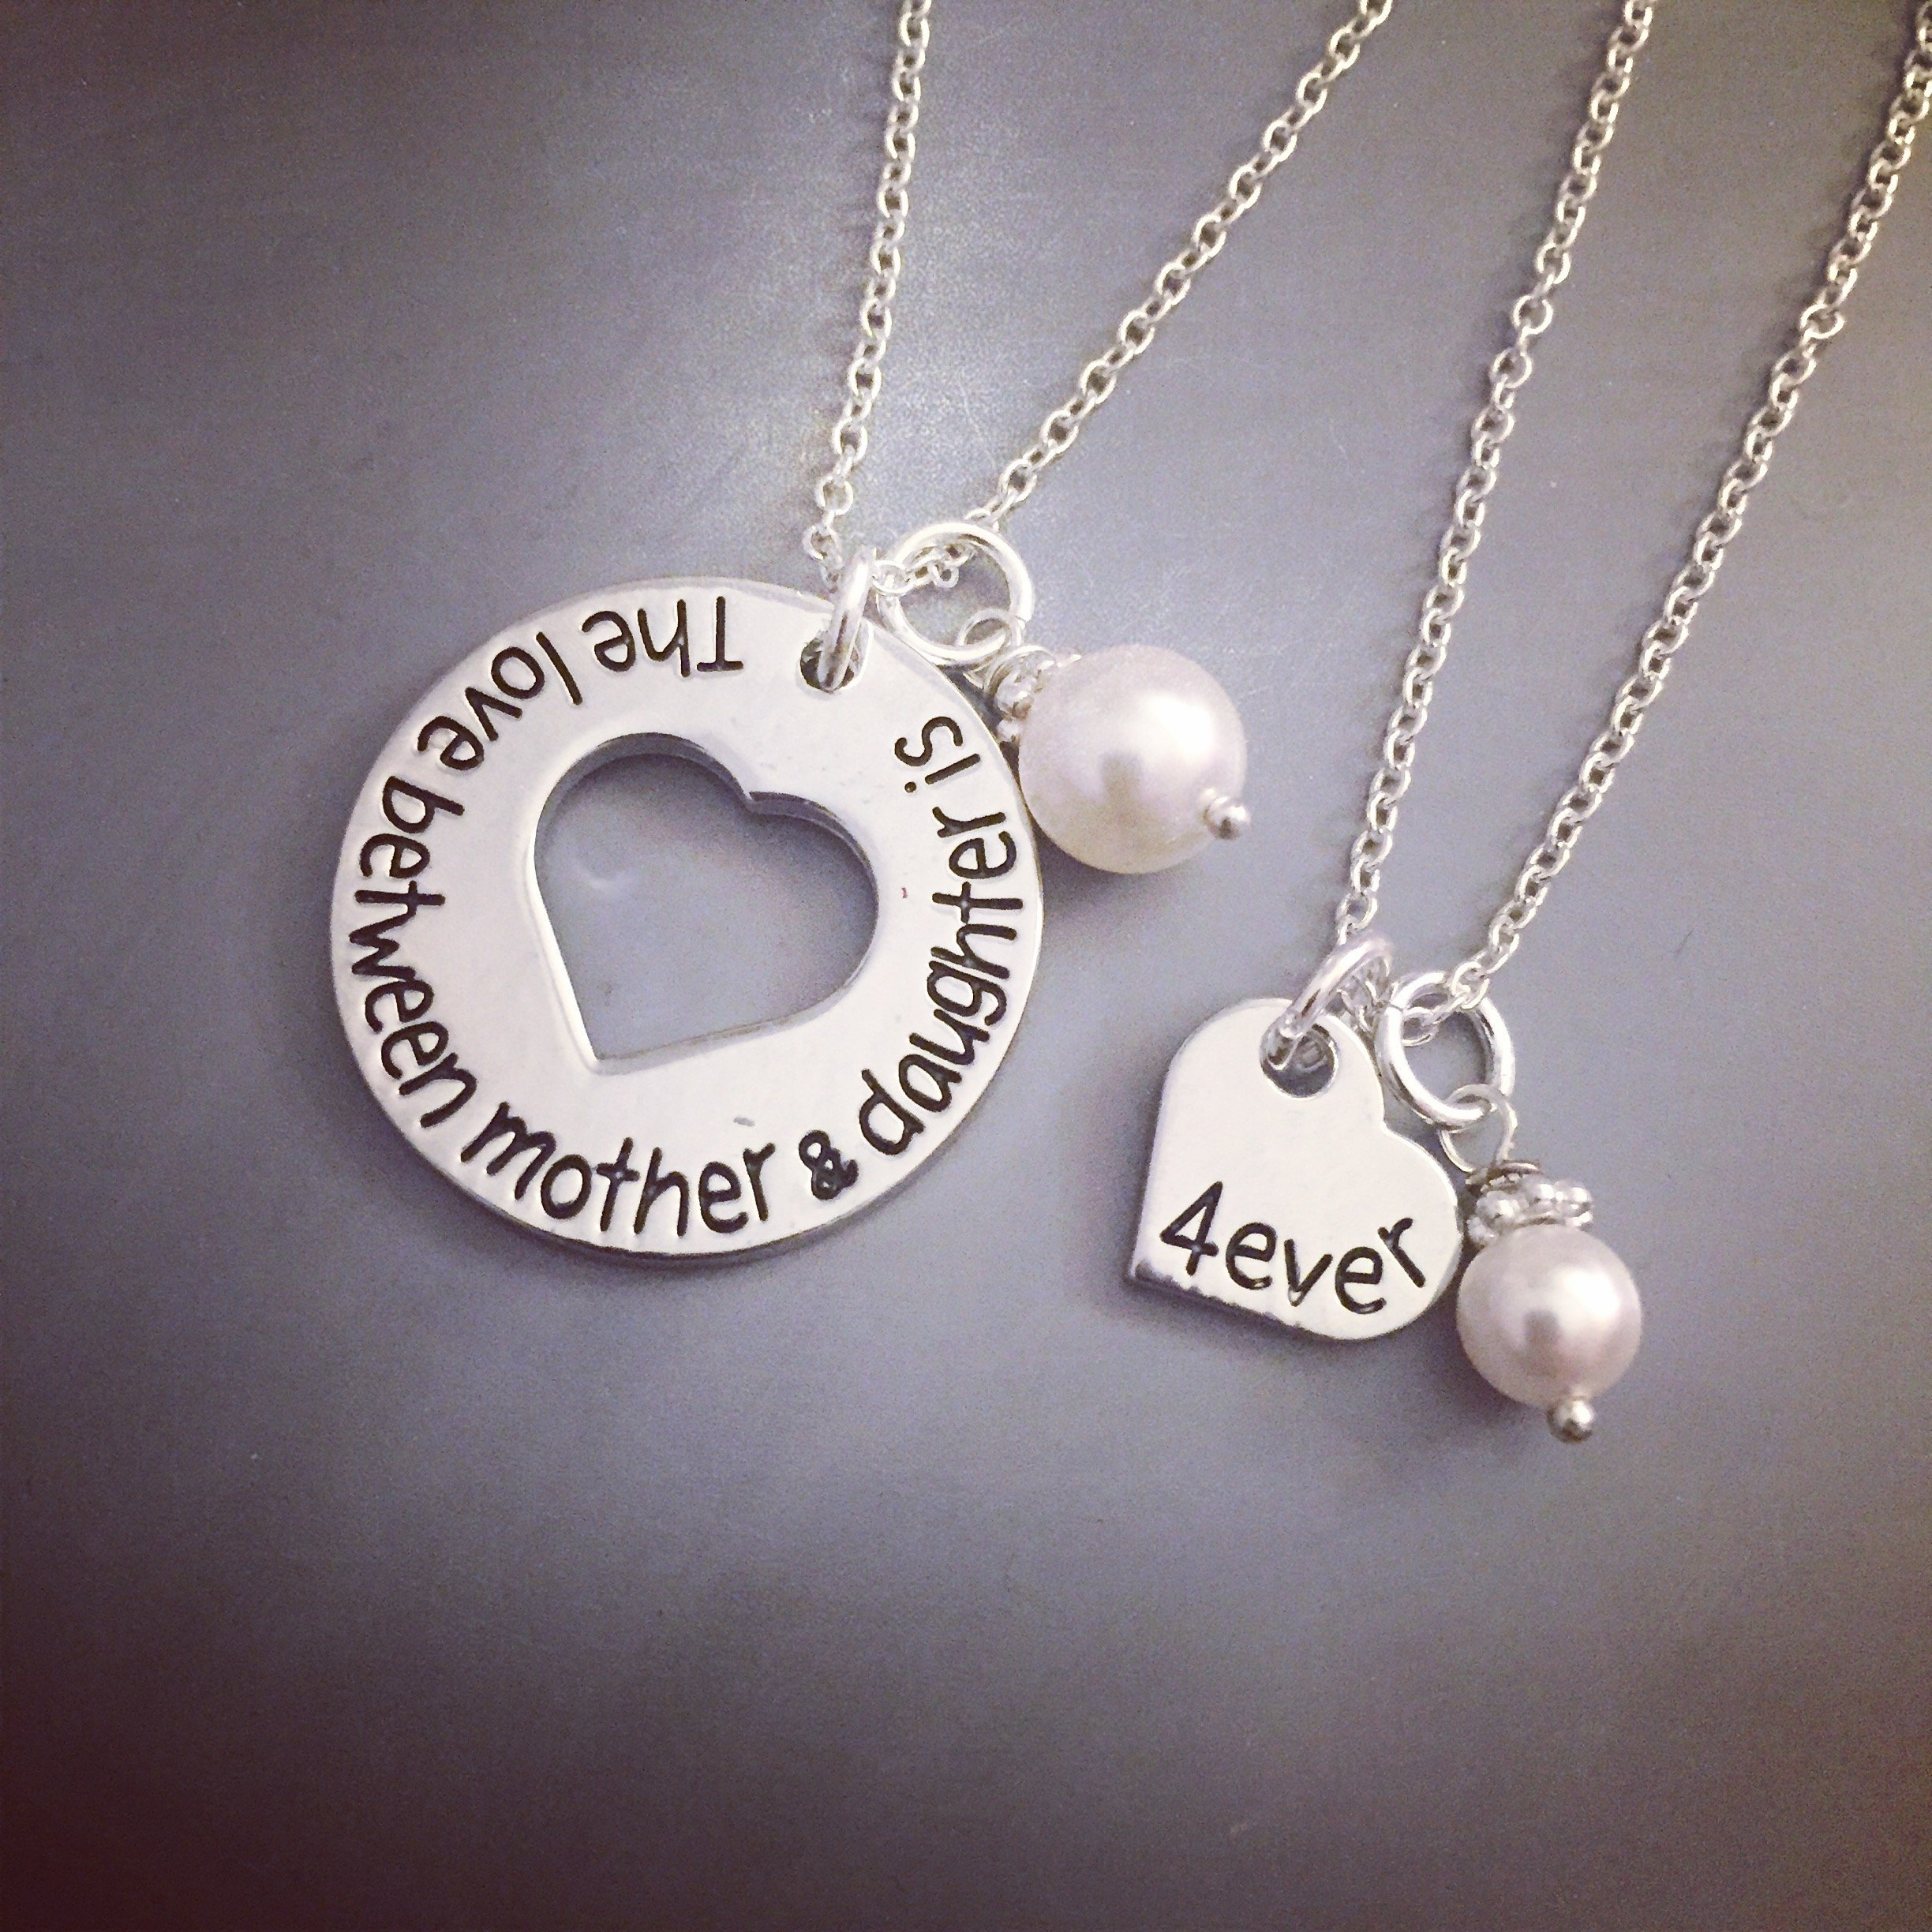 Hand Stamped Mother and Daughter Necklace Set